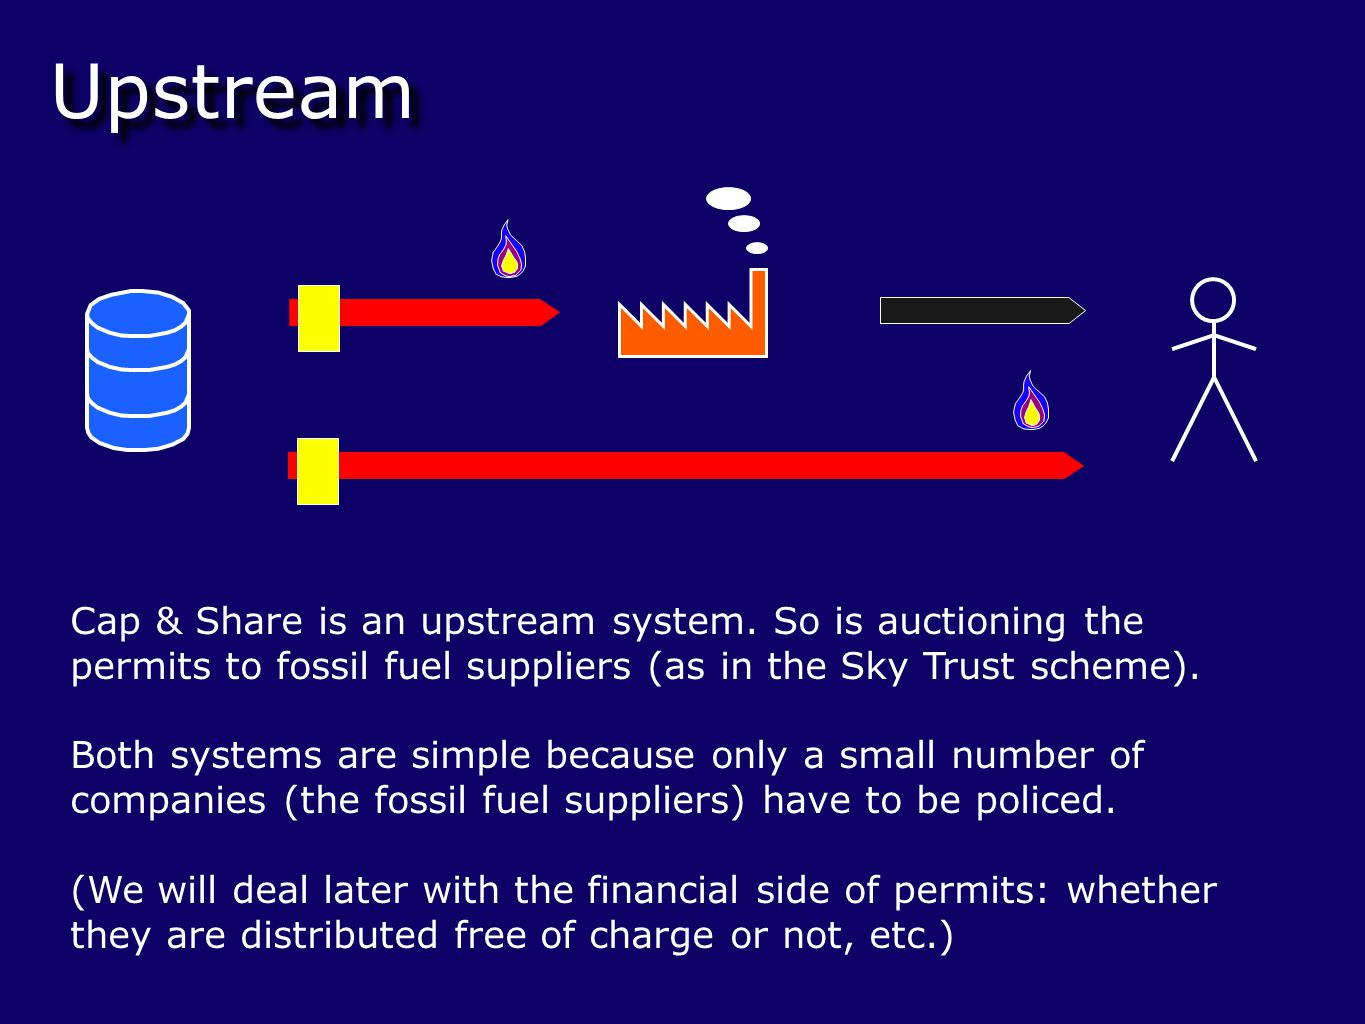 Upstream / ETS hybrid Not in ETS In ETS Fossil fuel suppliers must acquire permits for all fossil fuels as before, except that now any fossil fuels supplied to ETS companies are exempt.